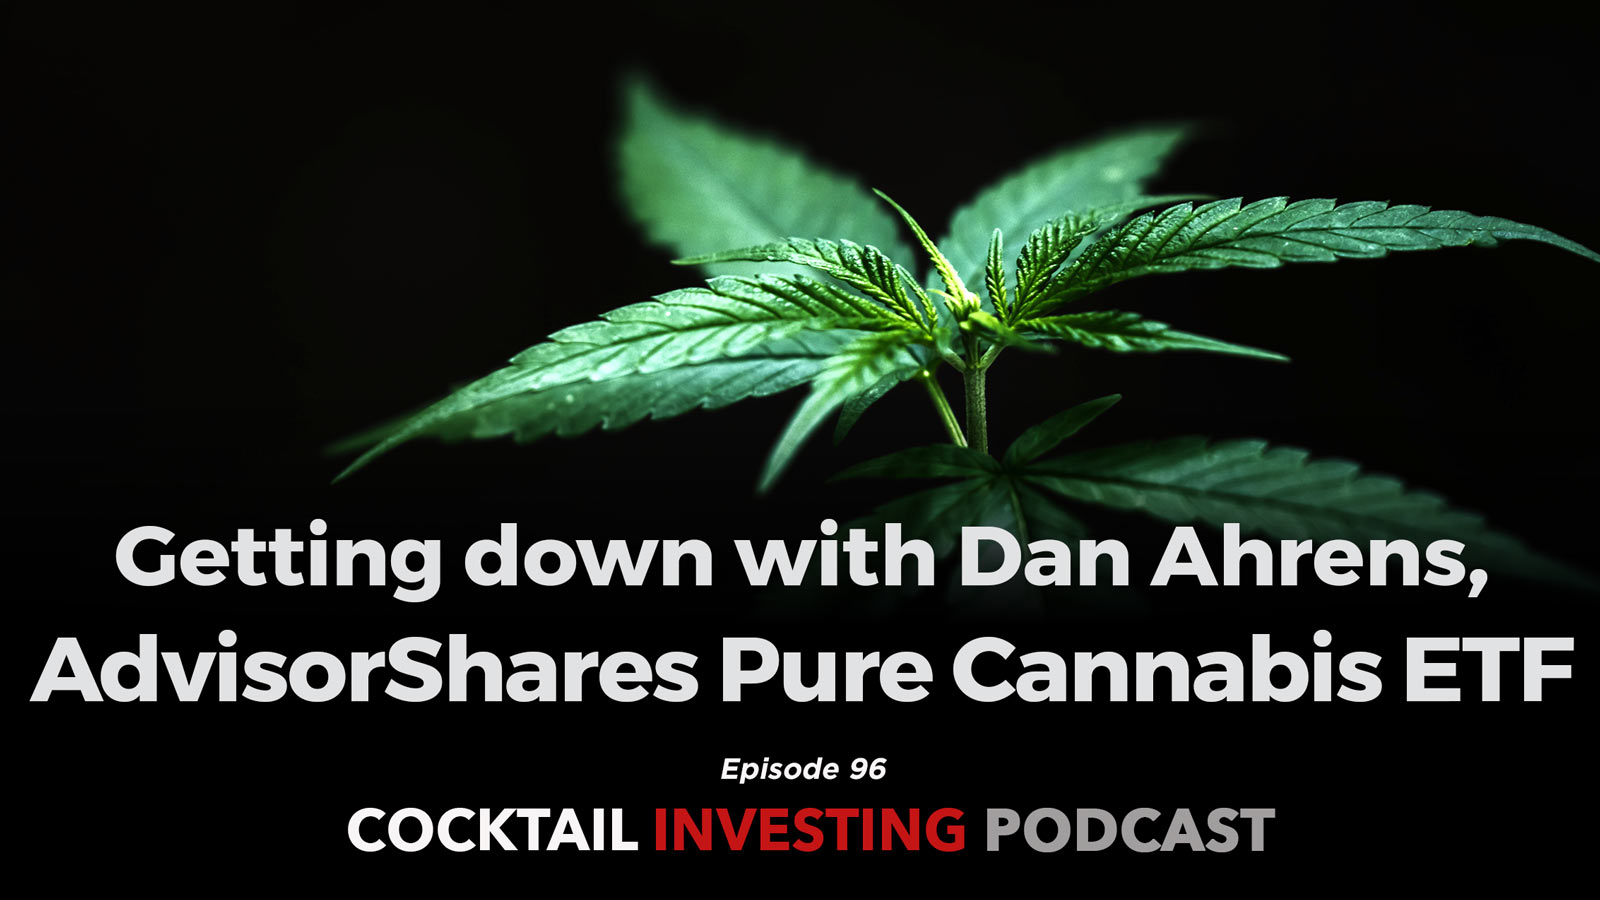 Ep 102: Getting down with Dan Ahrens, AdvisorShares Pure Cannabis ETF